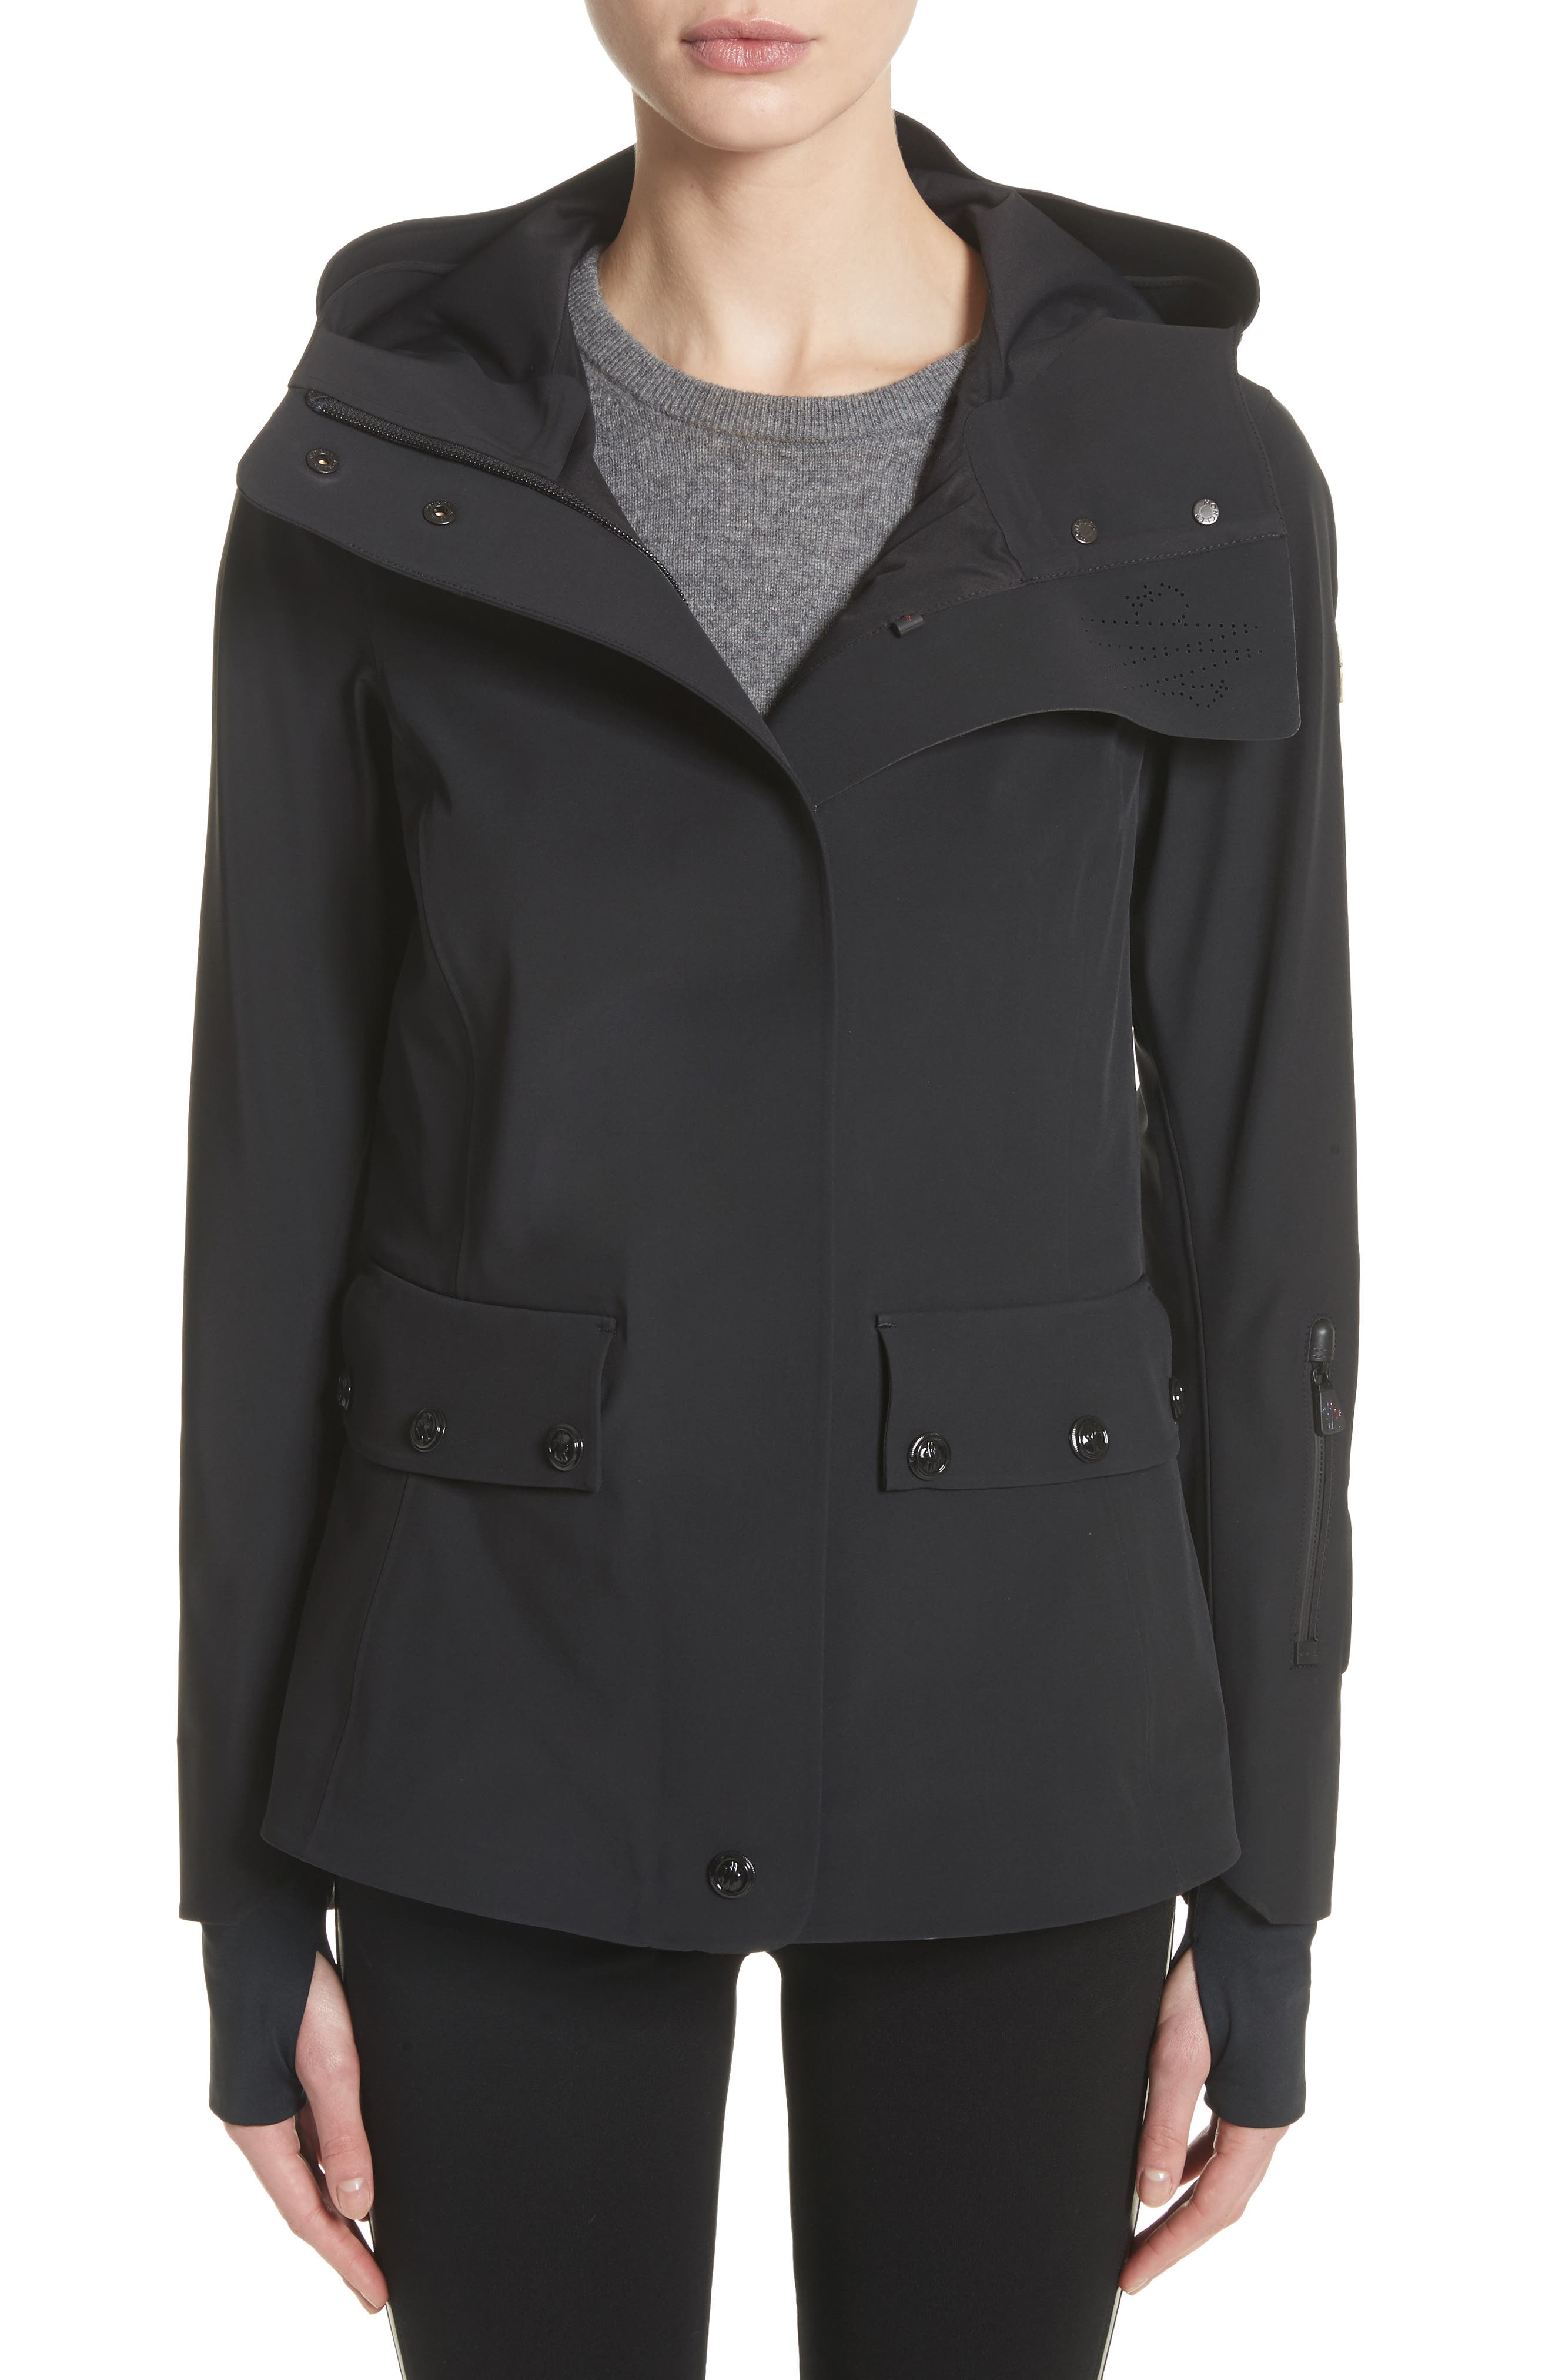 Lozere Waterproof Hooded Jacket,                         Main,                         color, Black